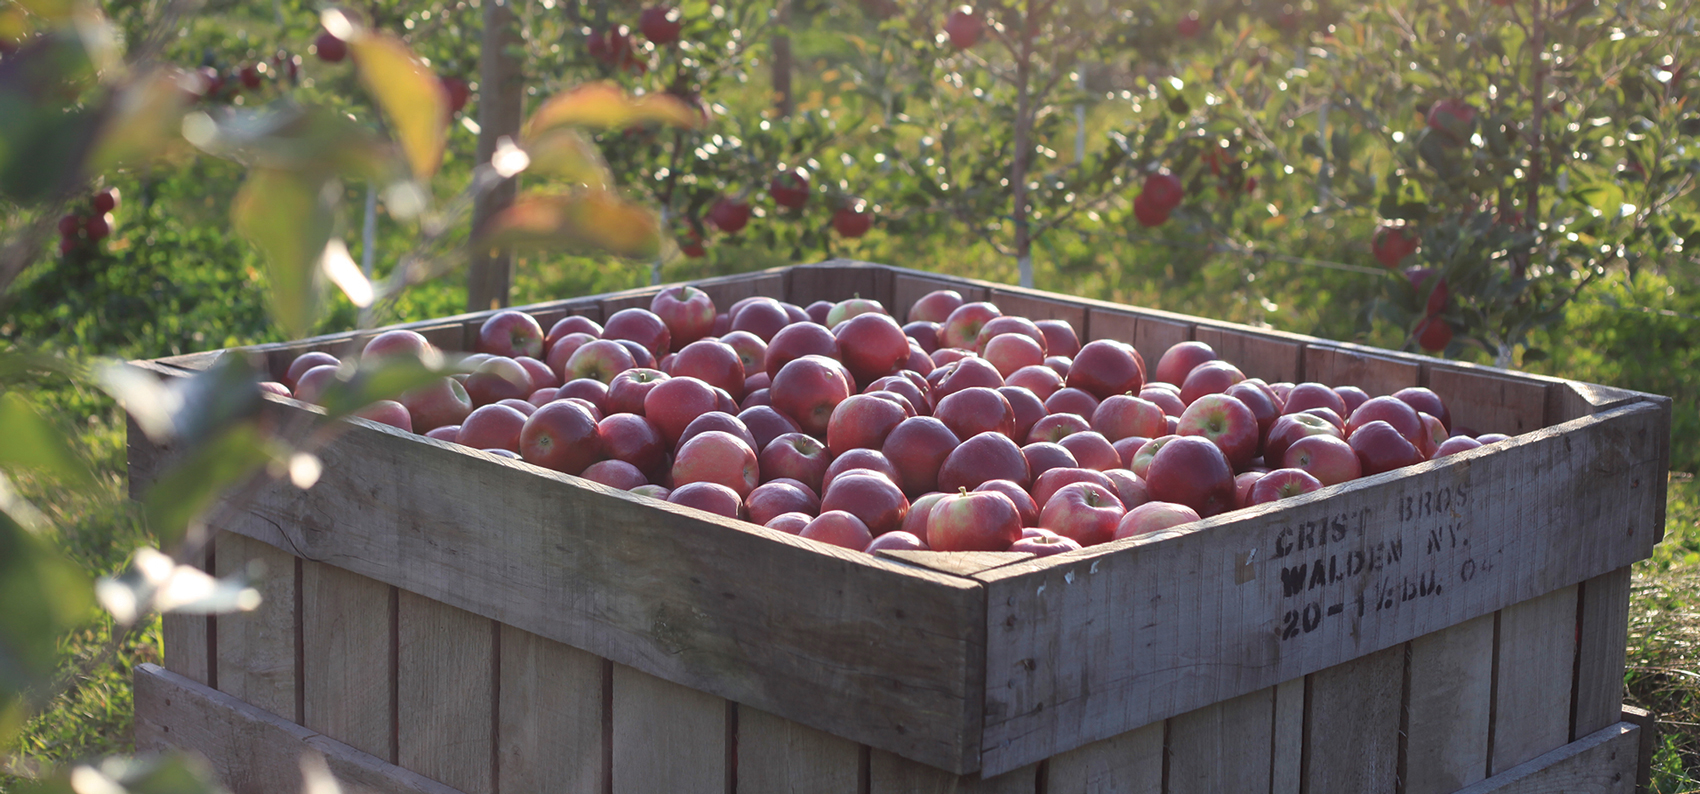 Fresh picked apples from Crist Brothers Orchards